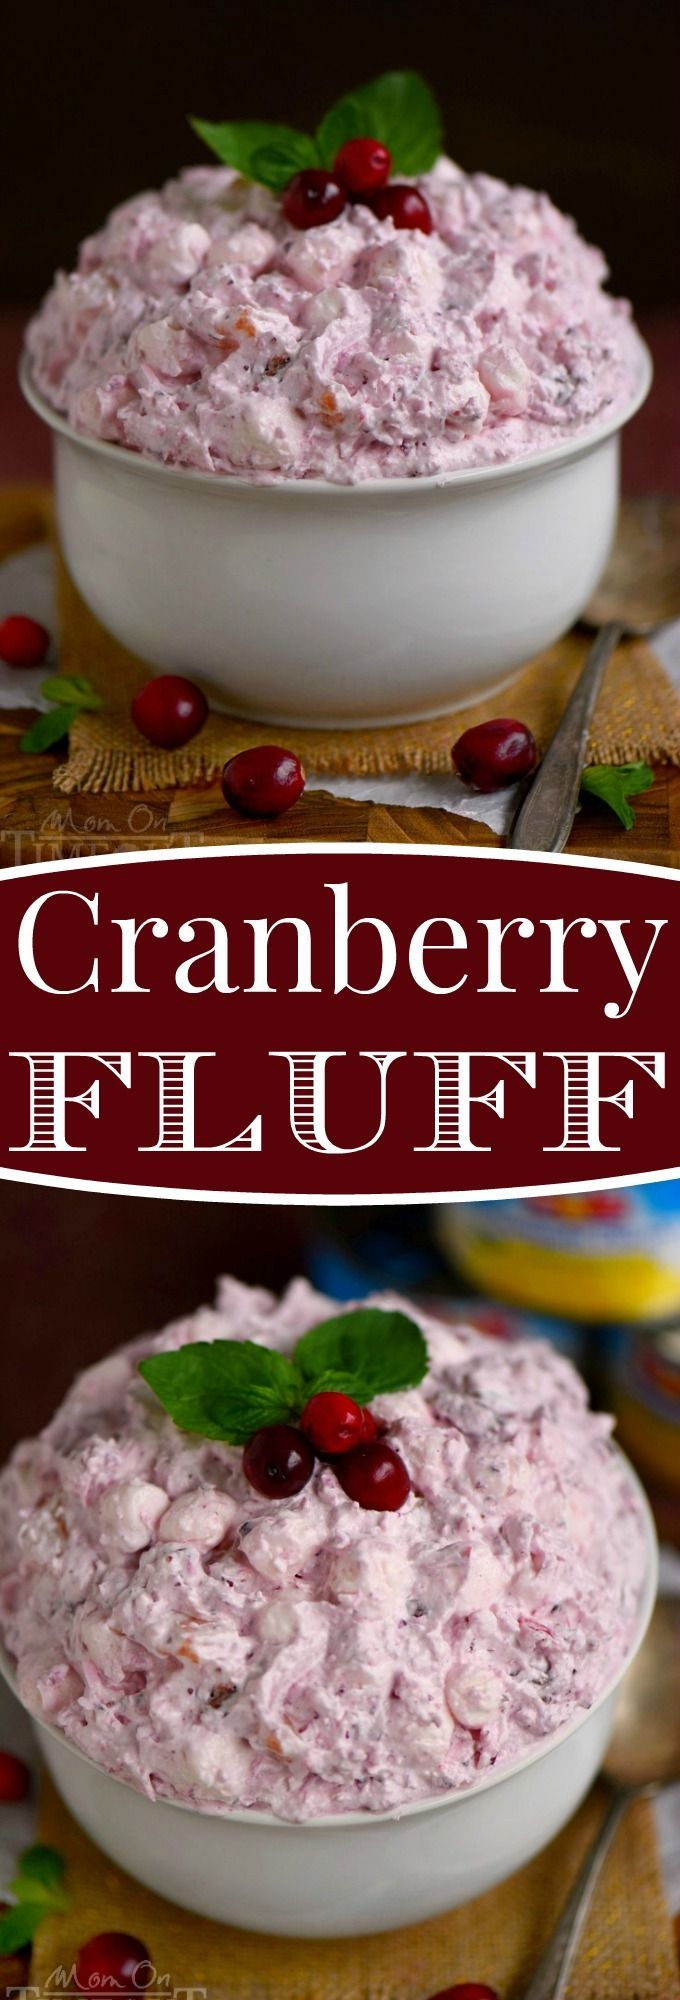 What your holiday table is missing! This Easy Cranberry Fluff is an amazing dessert salad made with cranberries, pineapples, coconut and marshmallows. No one can resist this beautiful and scrumptious dessert! #ChainofCheer #ad